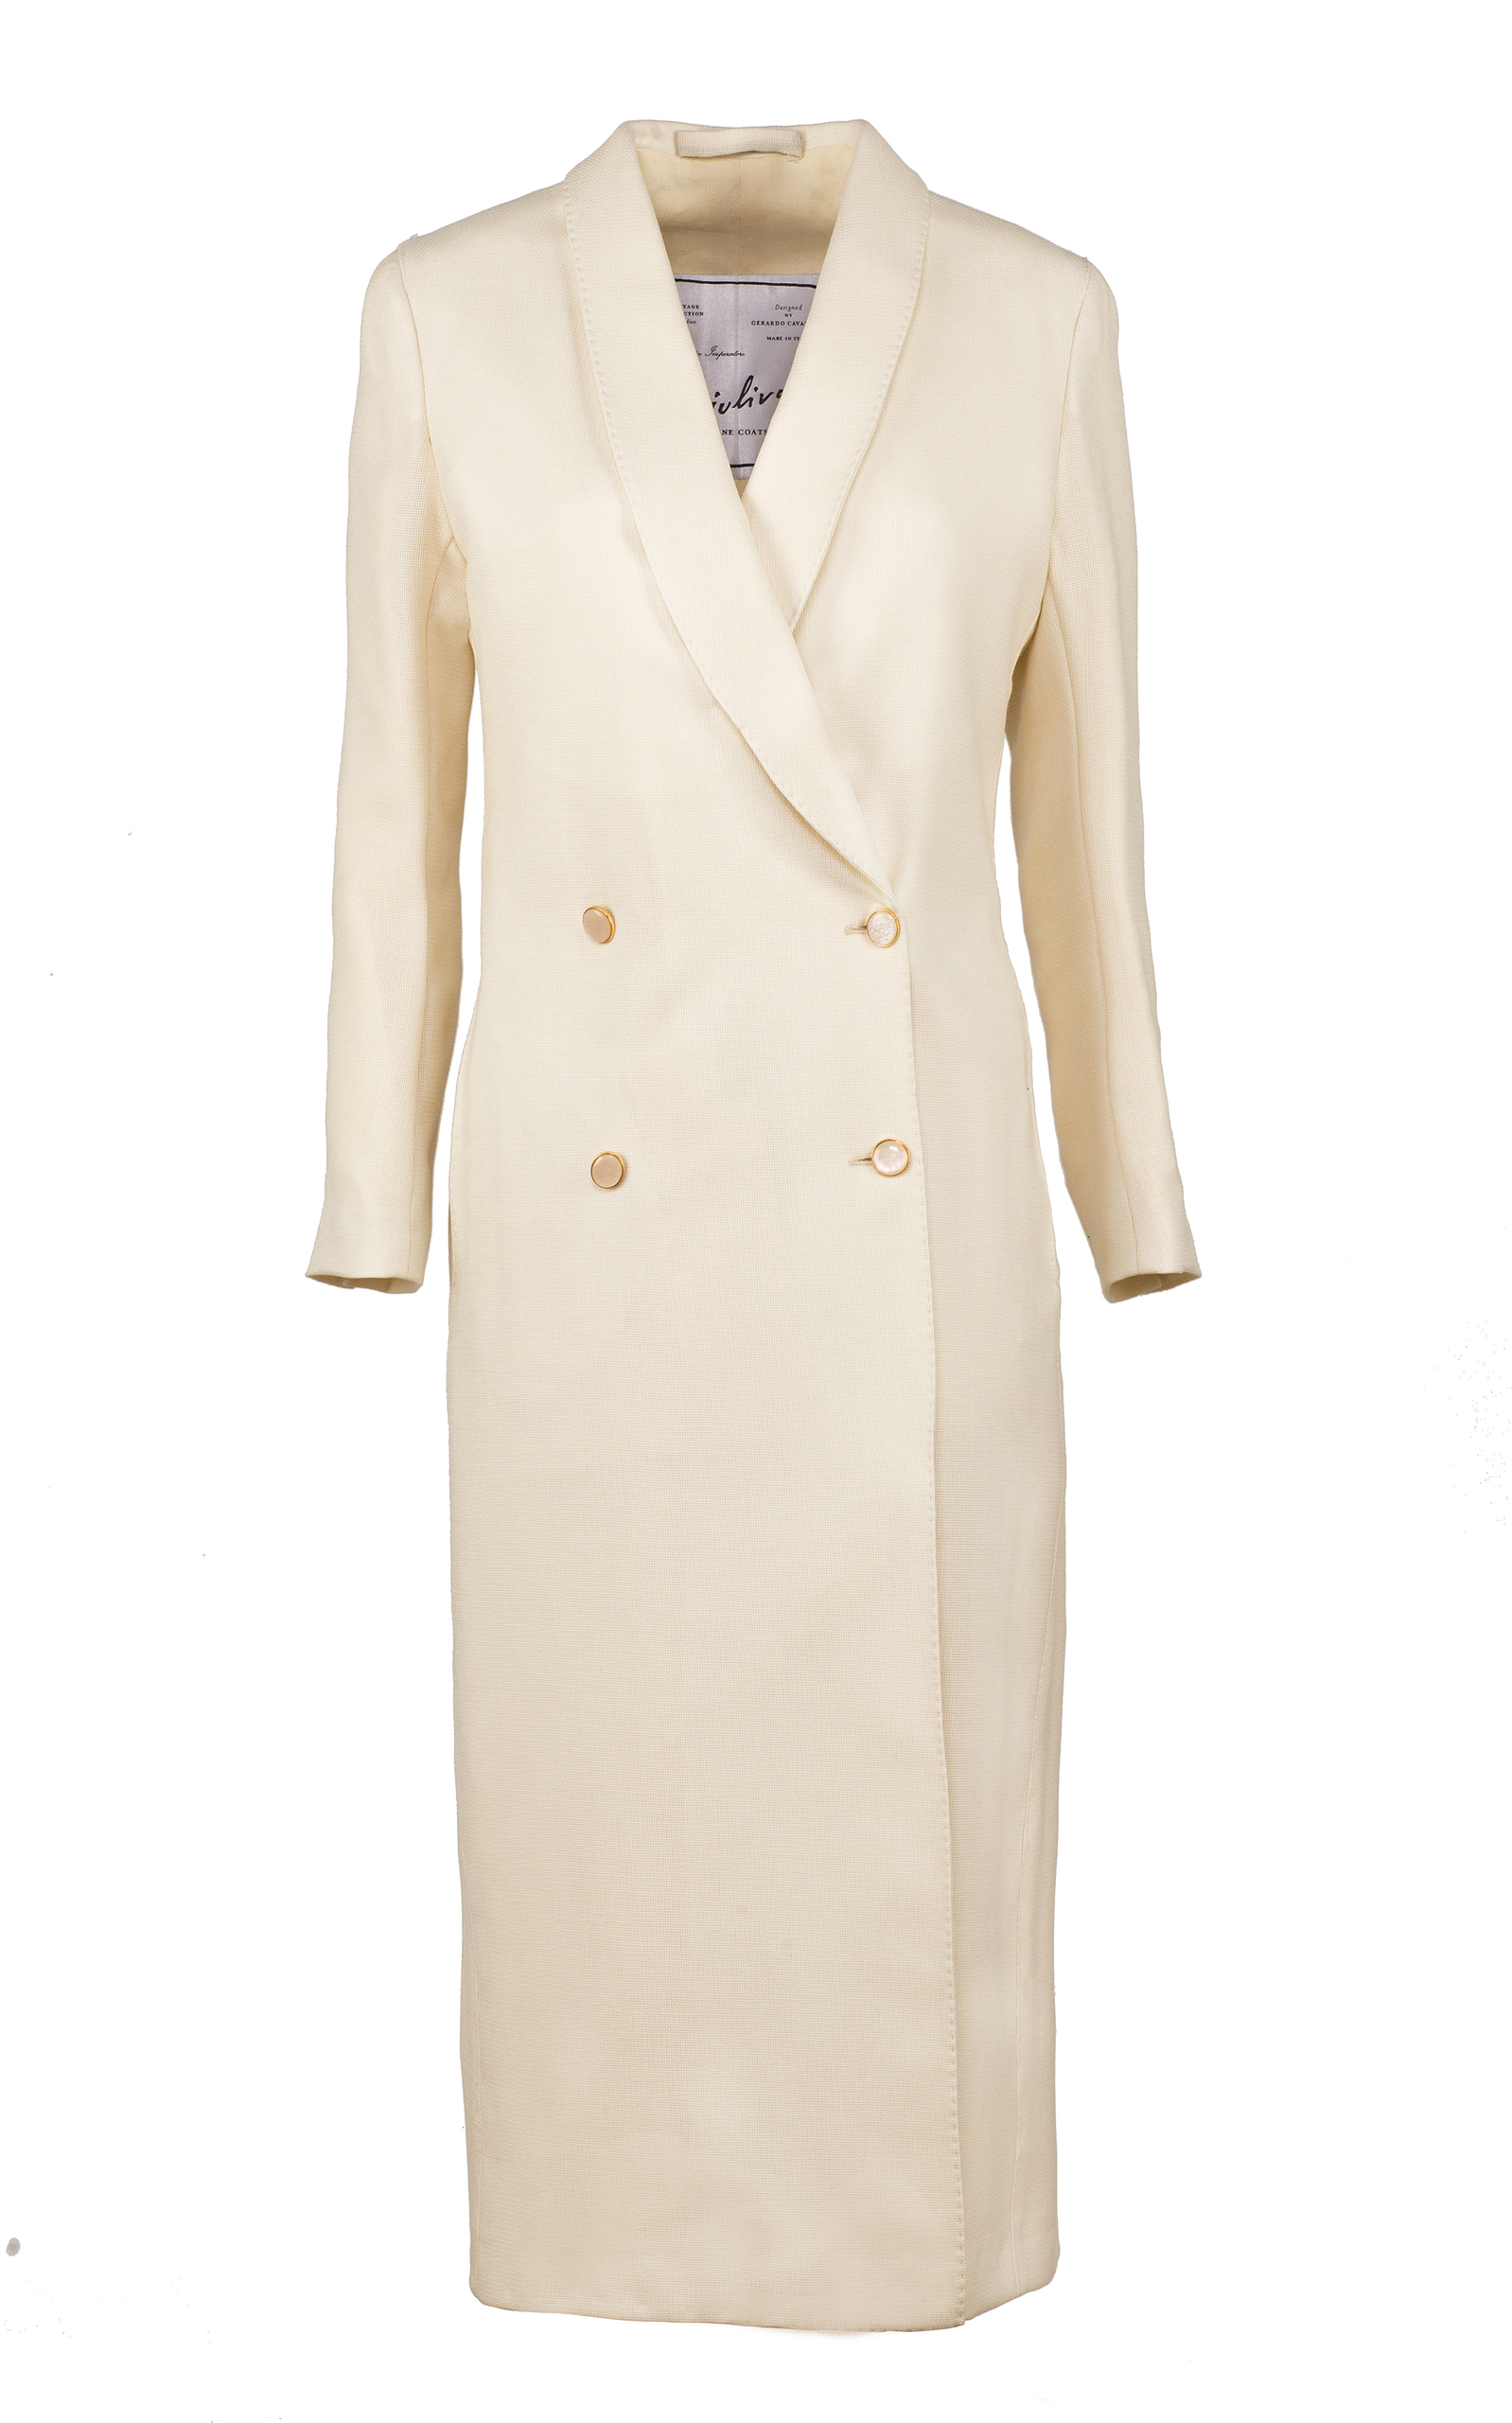 GIULIVA HERITAGE COLLECTION Josephine Hopsack Coat in White